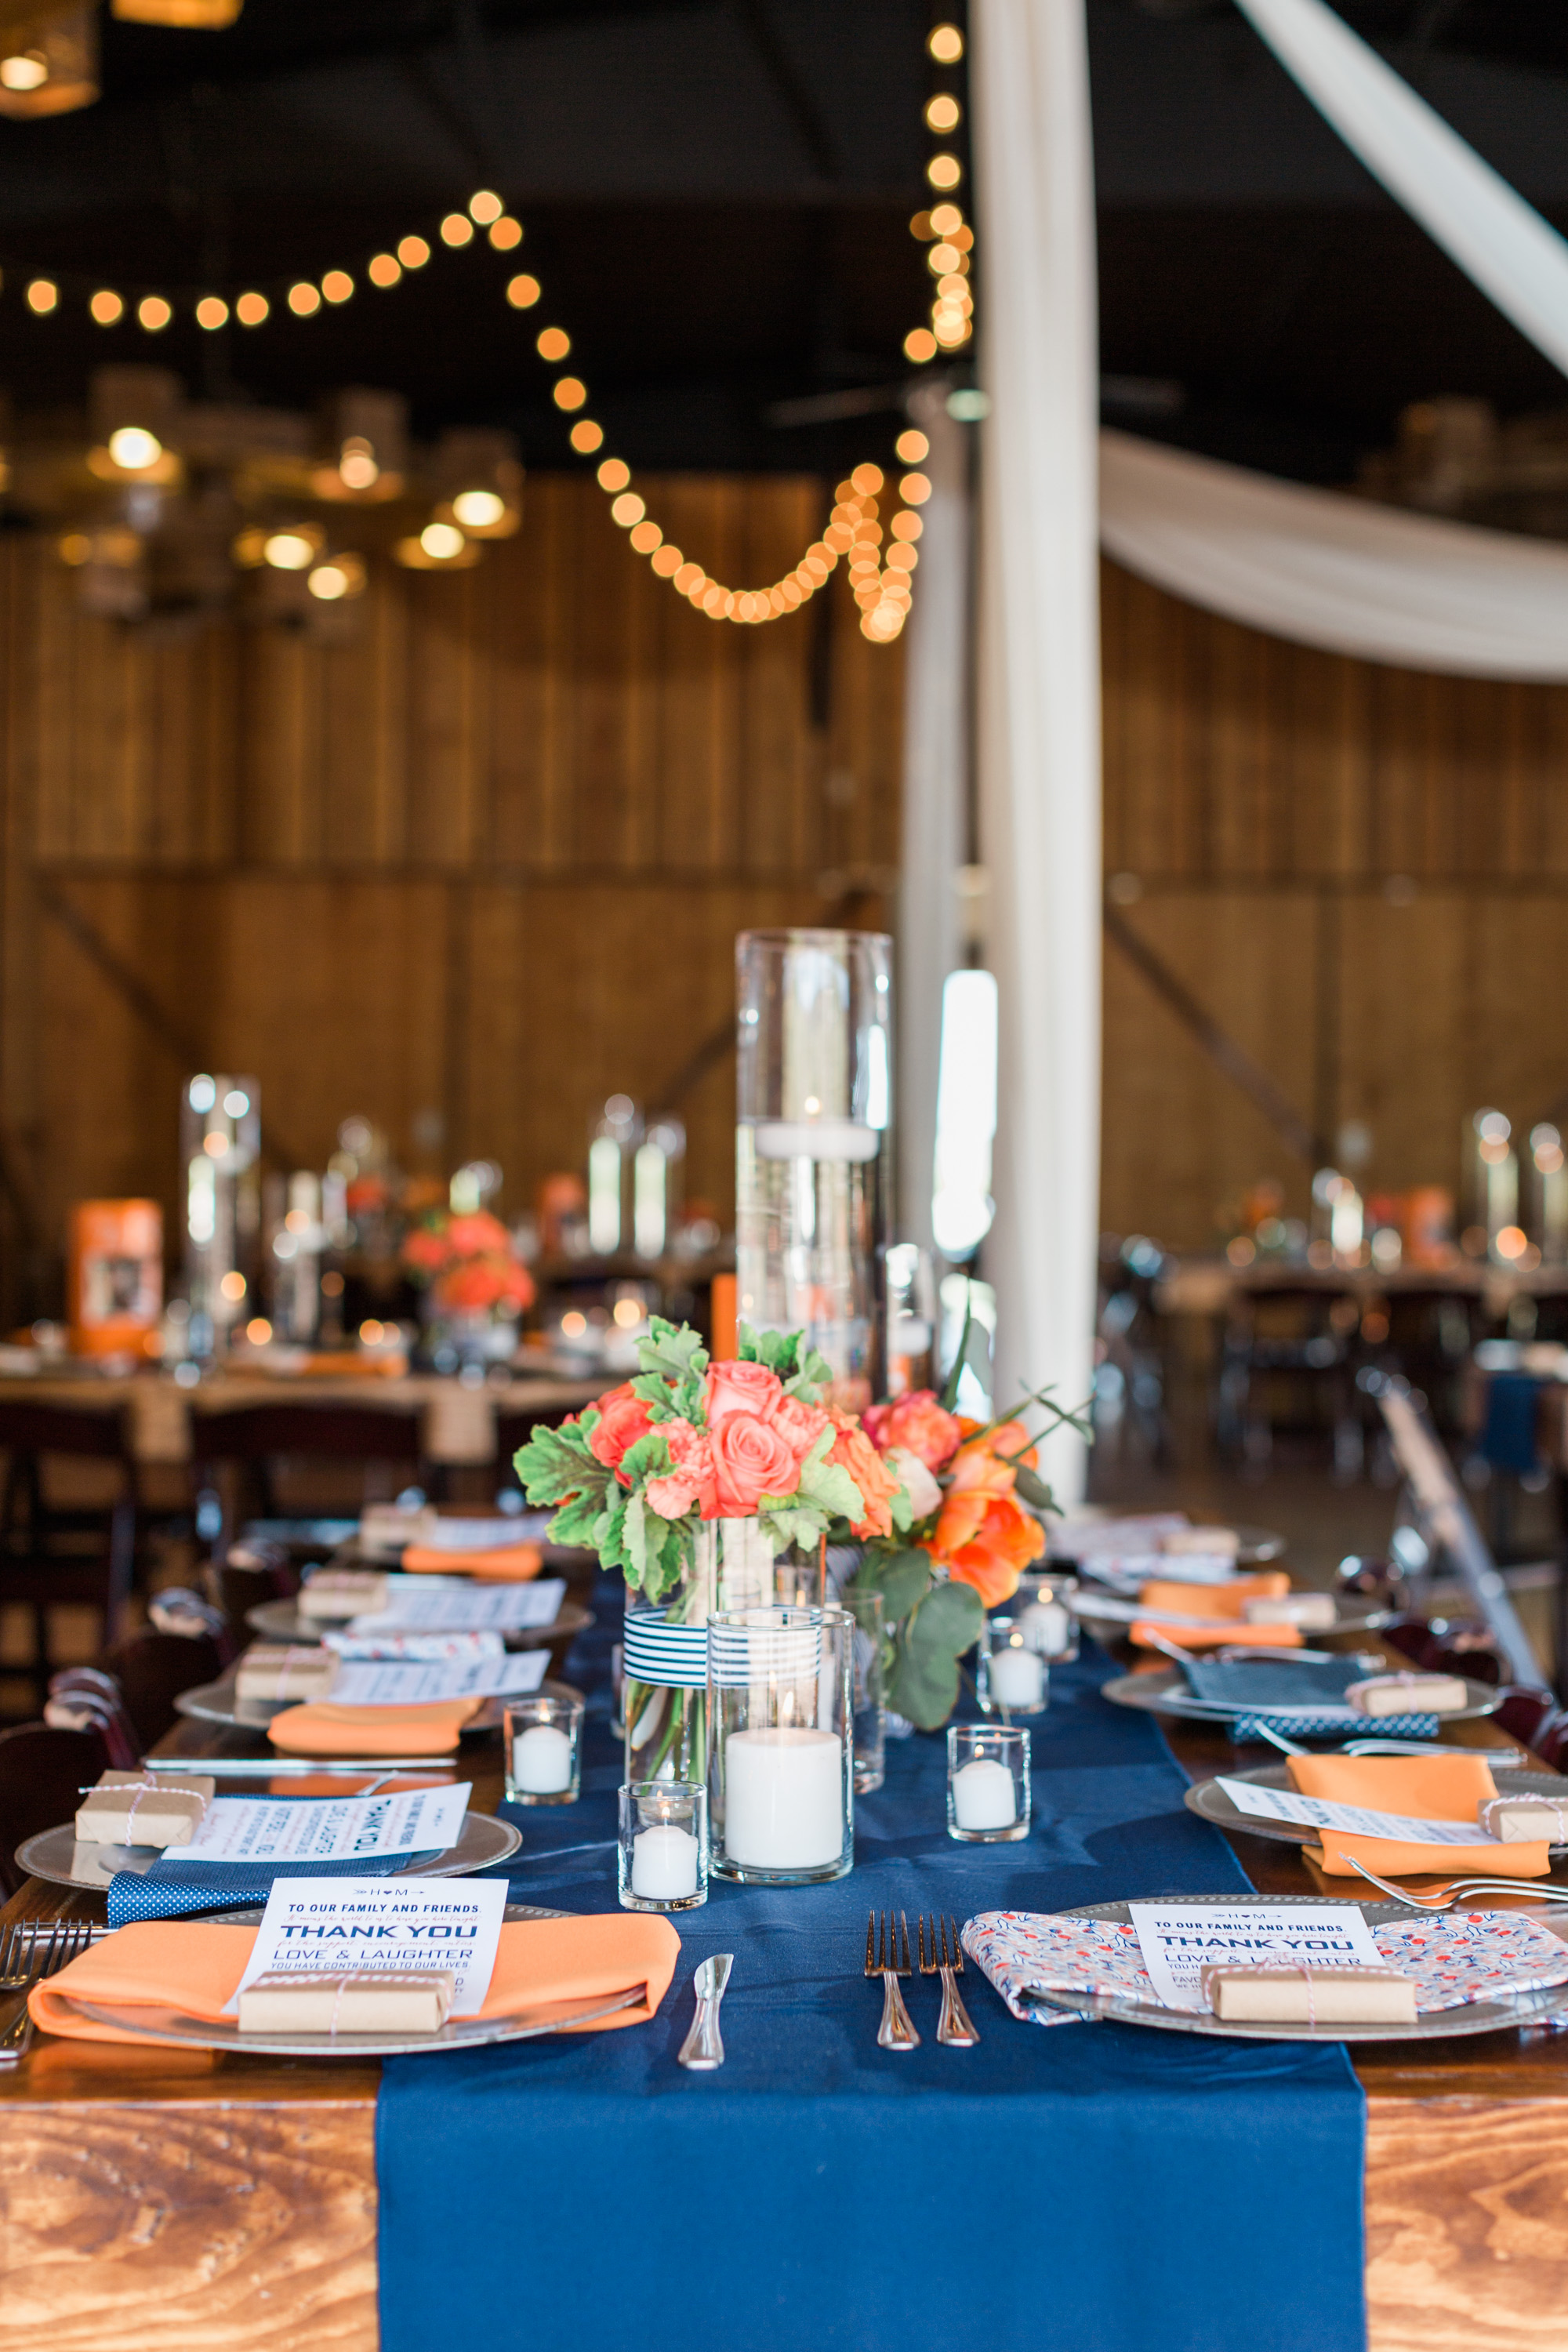 Beautiful navy and orange reception set up at Tucson barn wedding venue, Stardance.